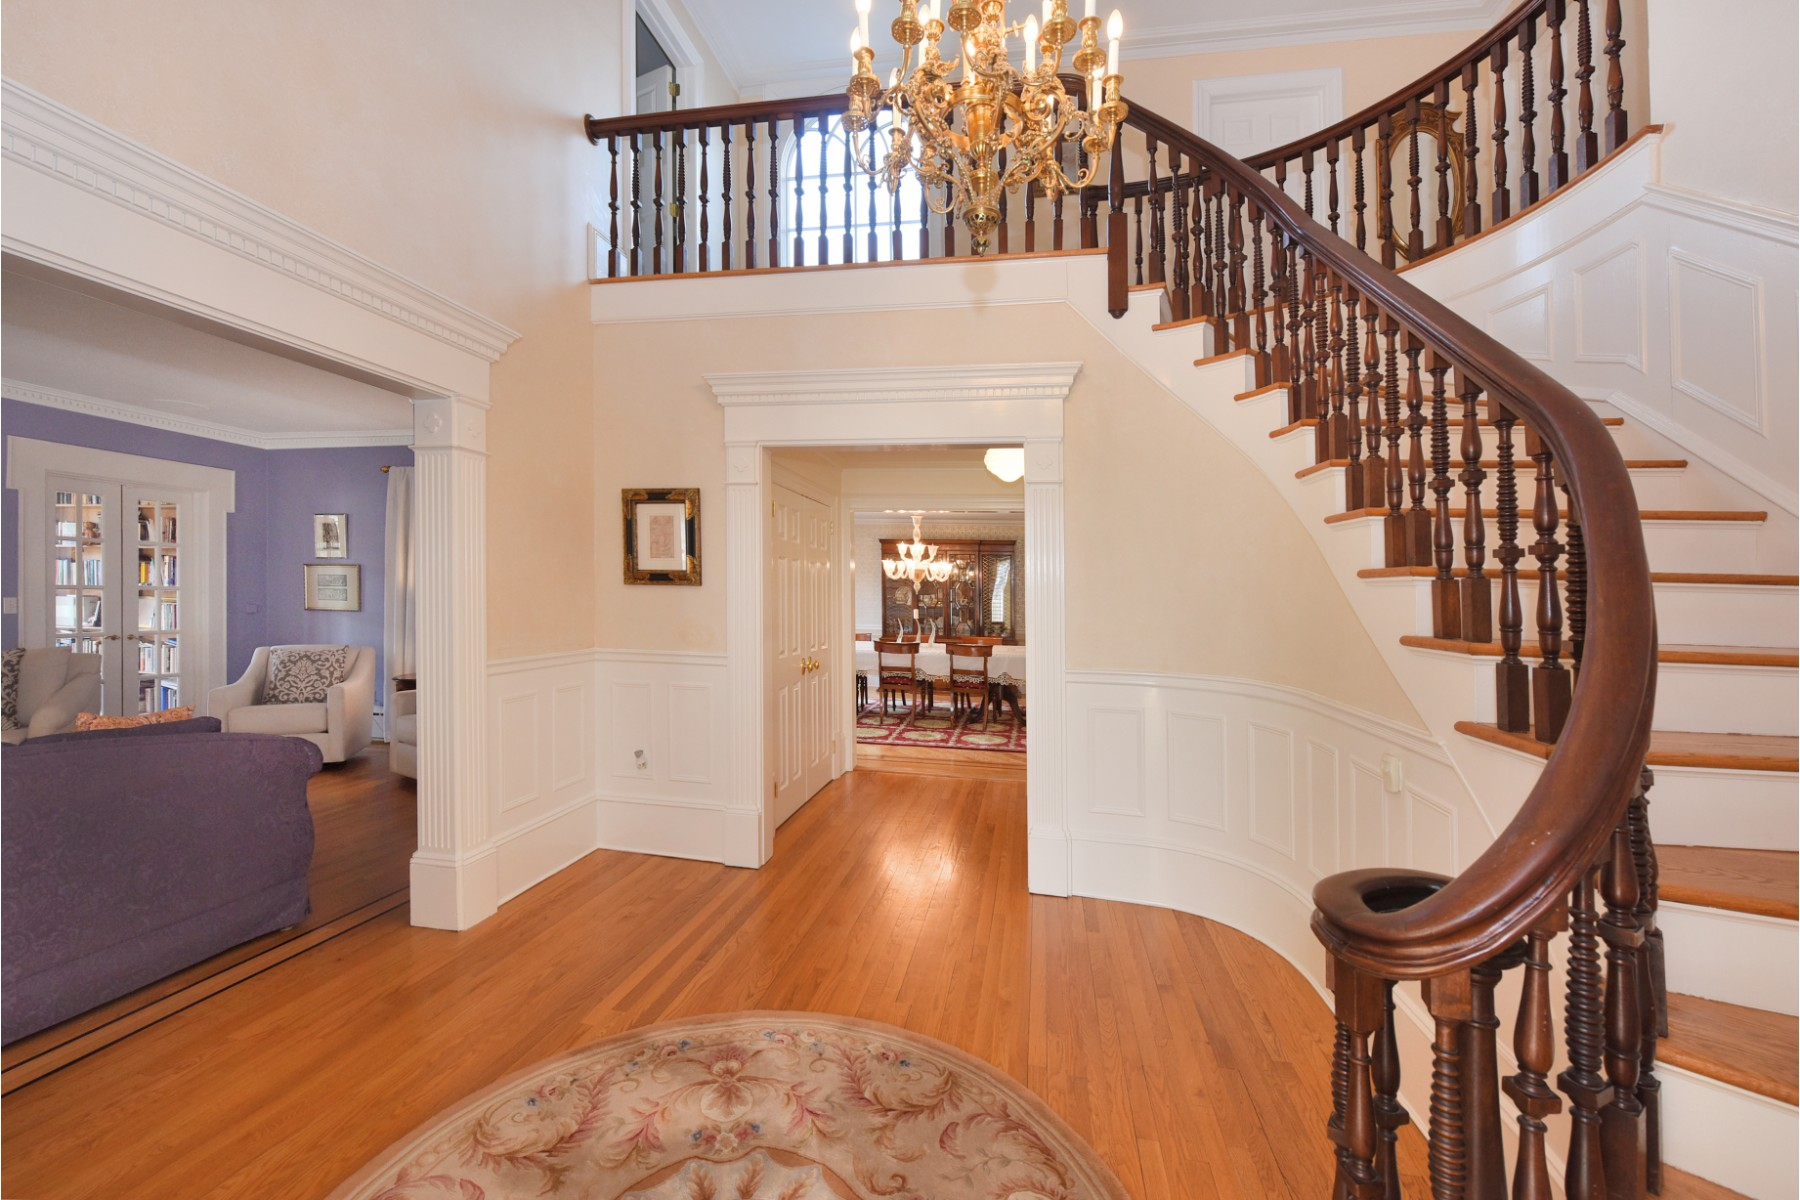 Single Family Homes for Active at Rockville Centre 121 Fountain Ave Rockville Centre, New York 11570 United States